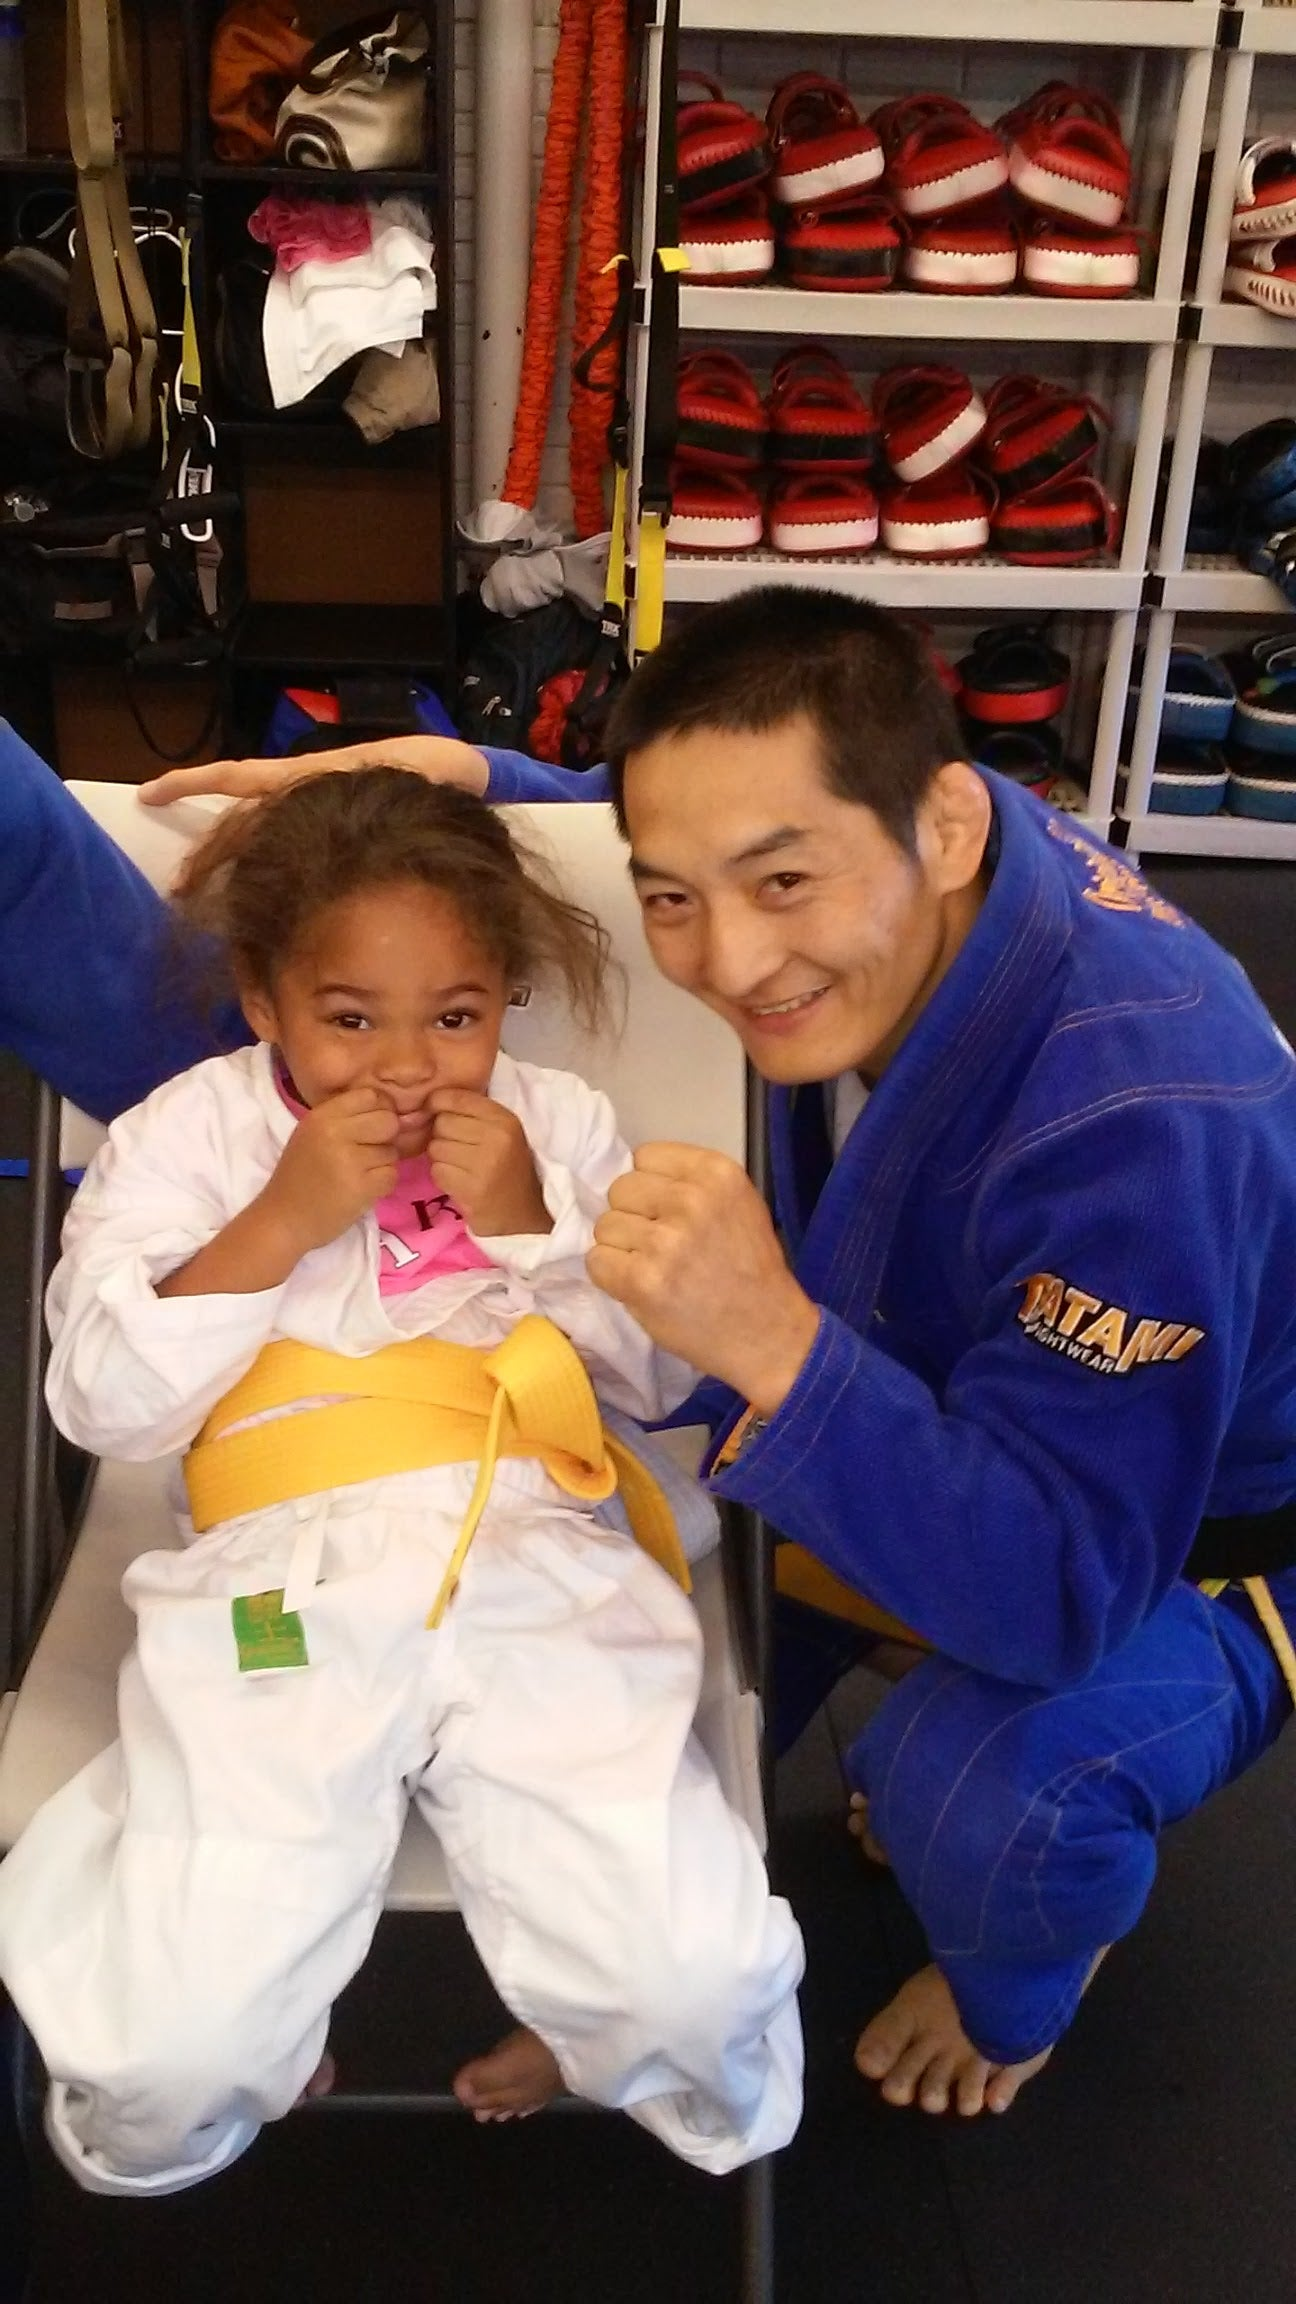 Sarah Padilla and her mixed martial arts teacher, or sensei. Through Our Military Kids, Padilla received a grant that paid for her mixed martial arts classes. (Photo: Ray Payton)